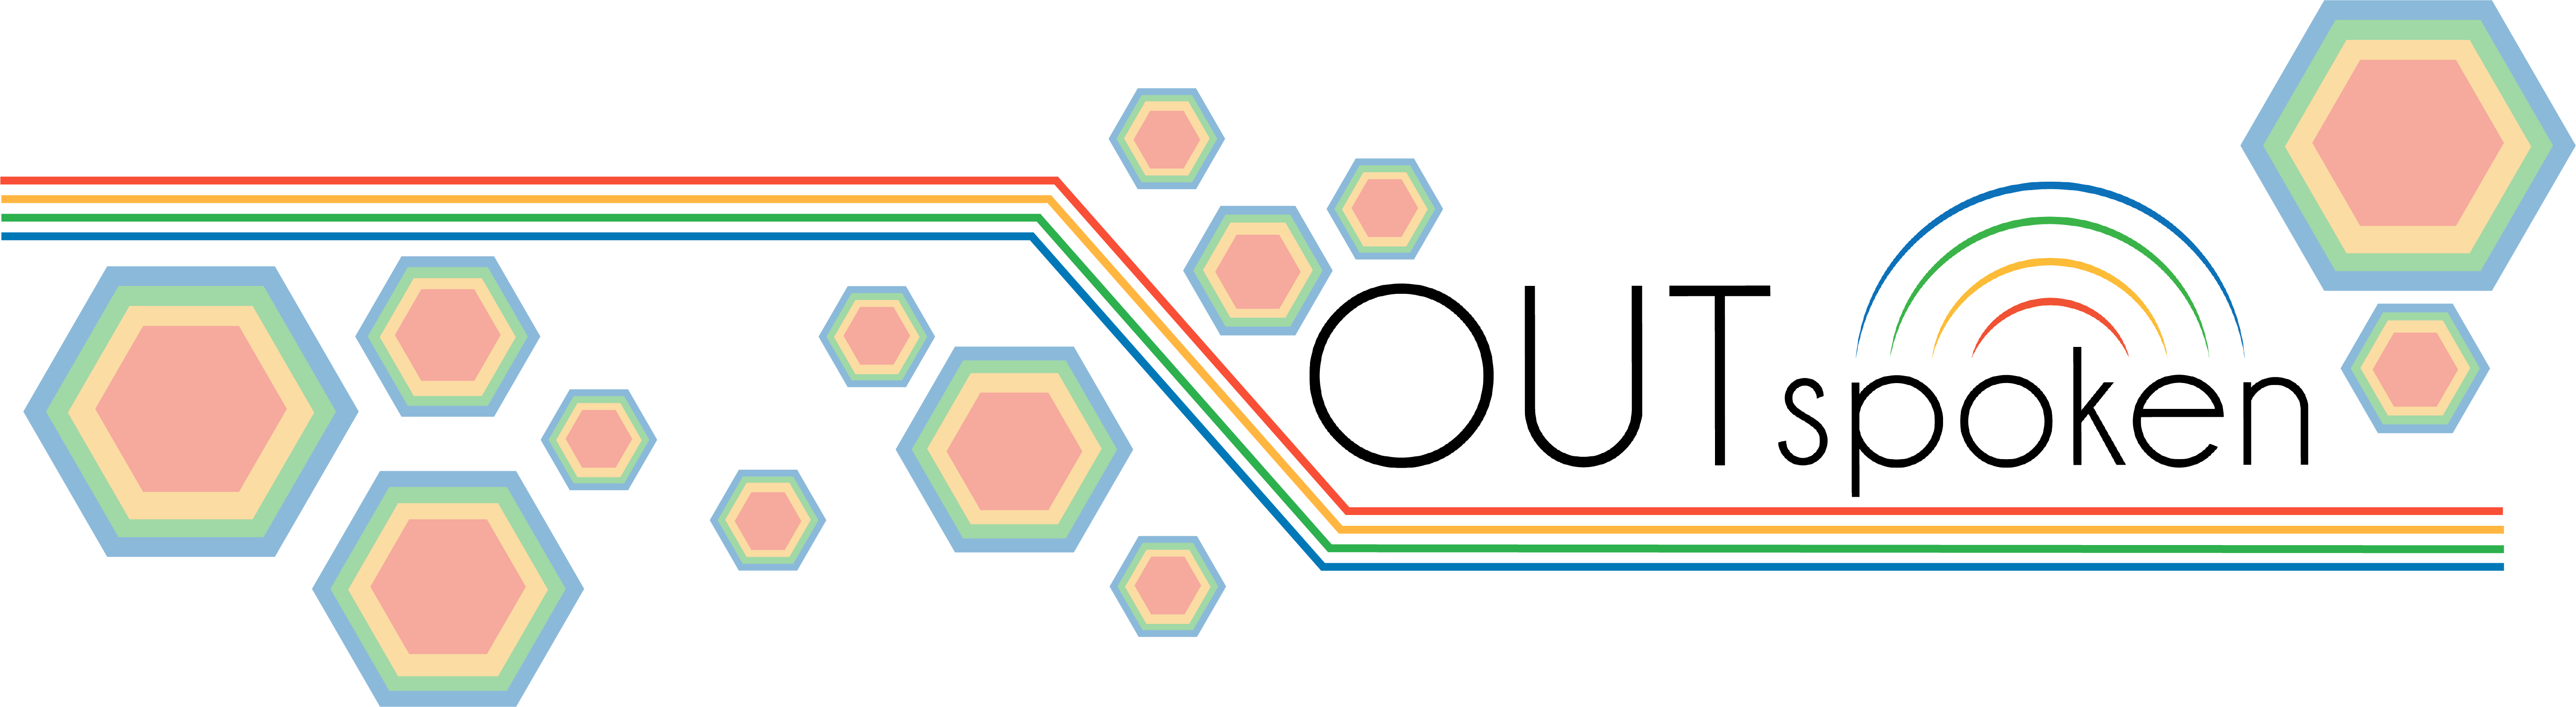 The OUTspoken web banner. There are rainbow hexagons on a white background and the OUTspoken logo is placed above red, yellow, green, and blue lines.